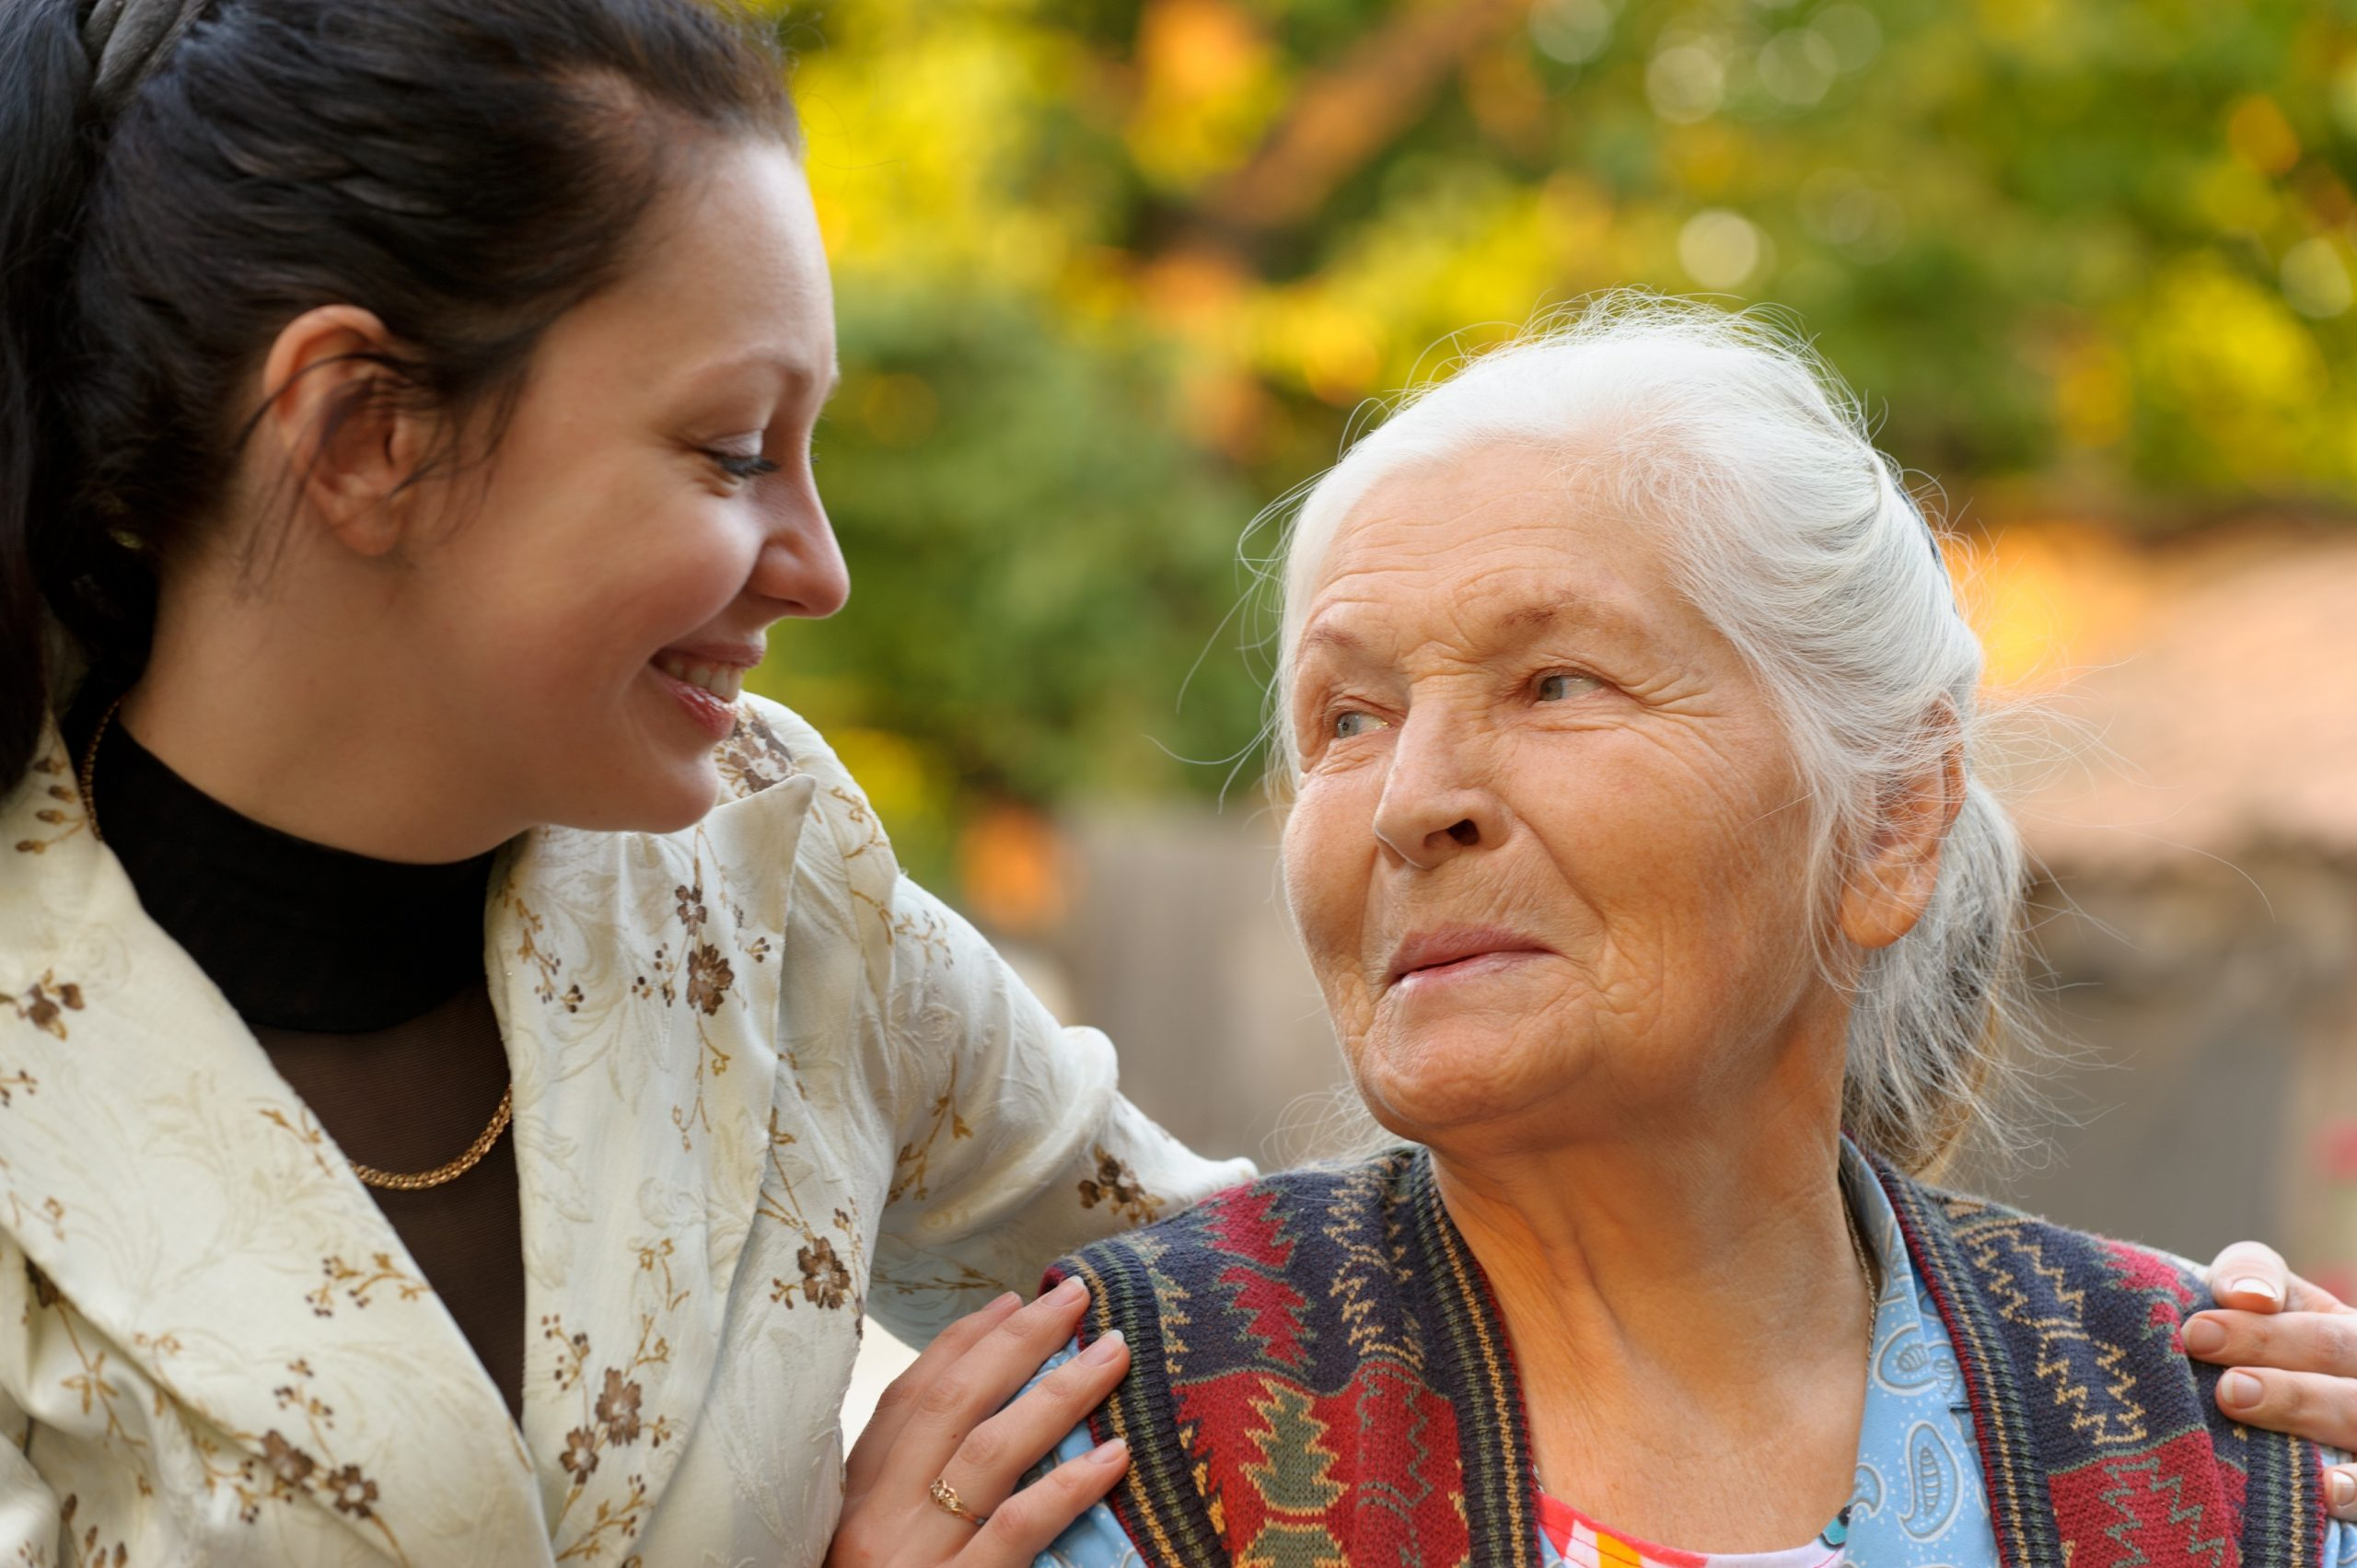 Establishing Your Role As Caregiver